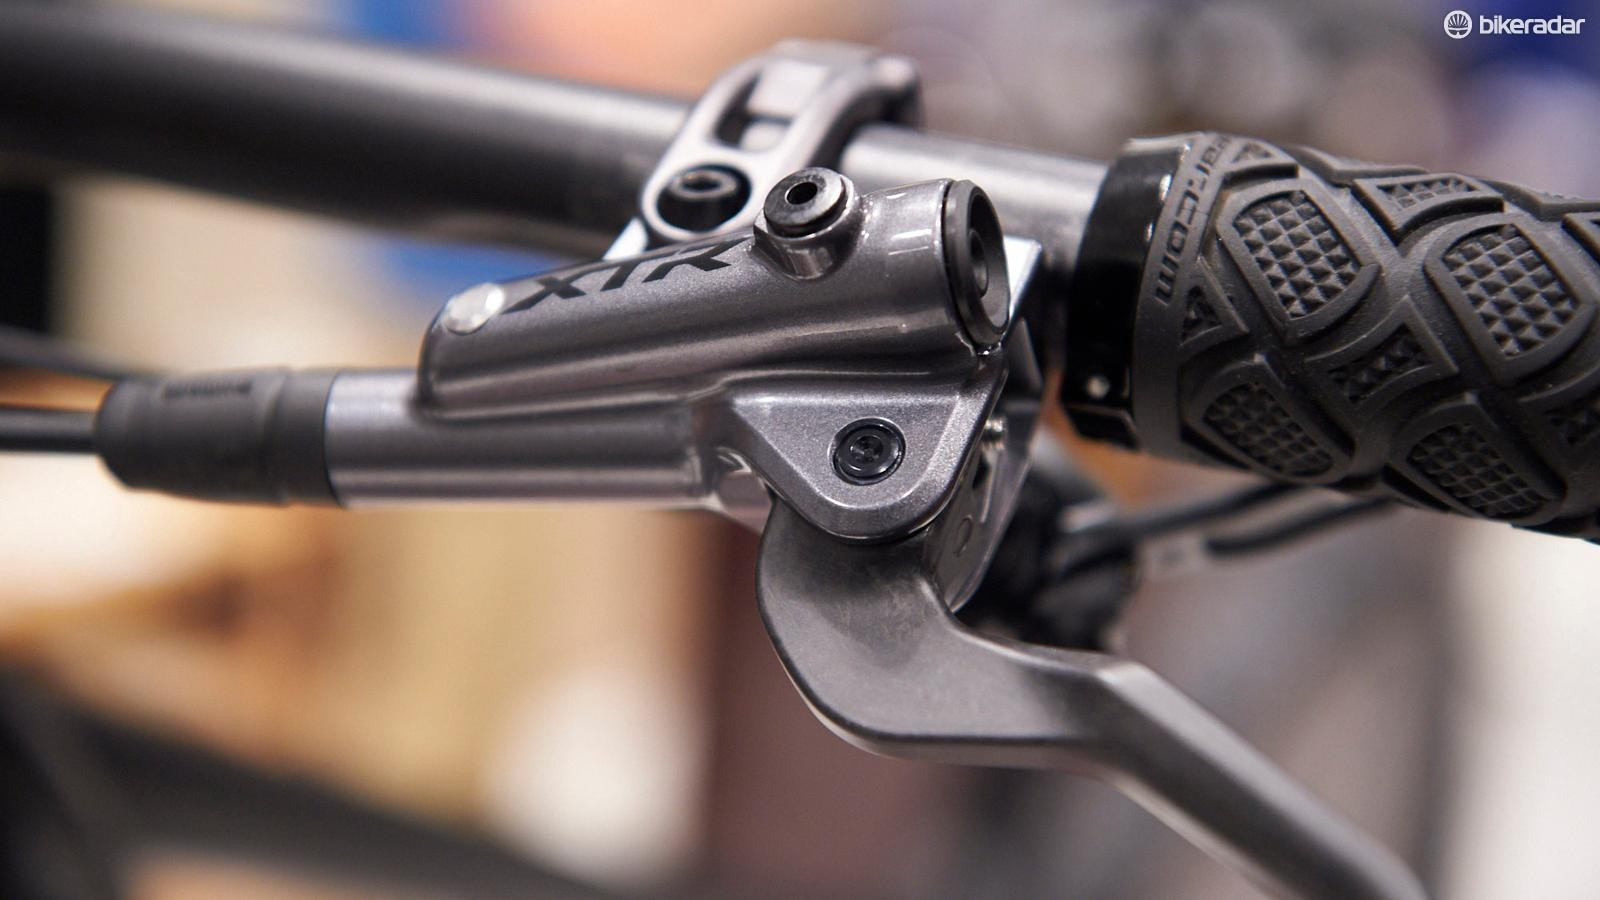 Shimano's XTR XC brake levers shave grams with carbon levers, while the Enduro version sticks with alloy